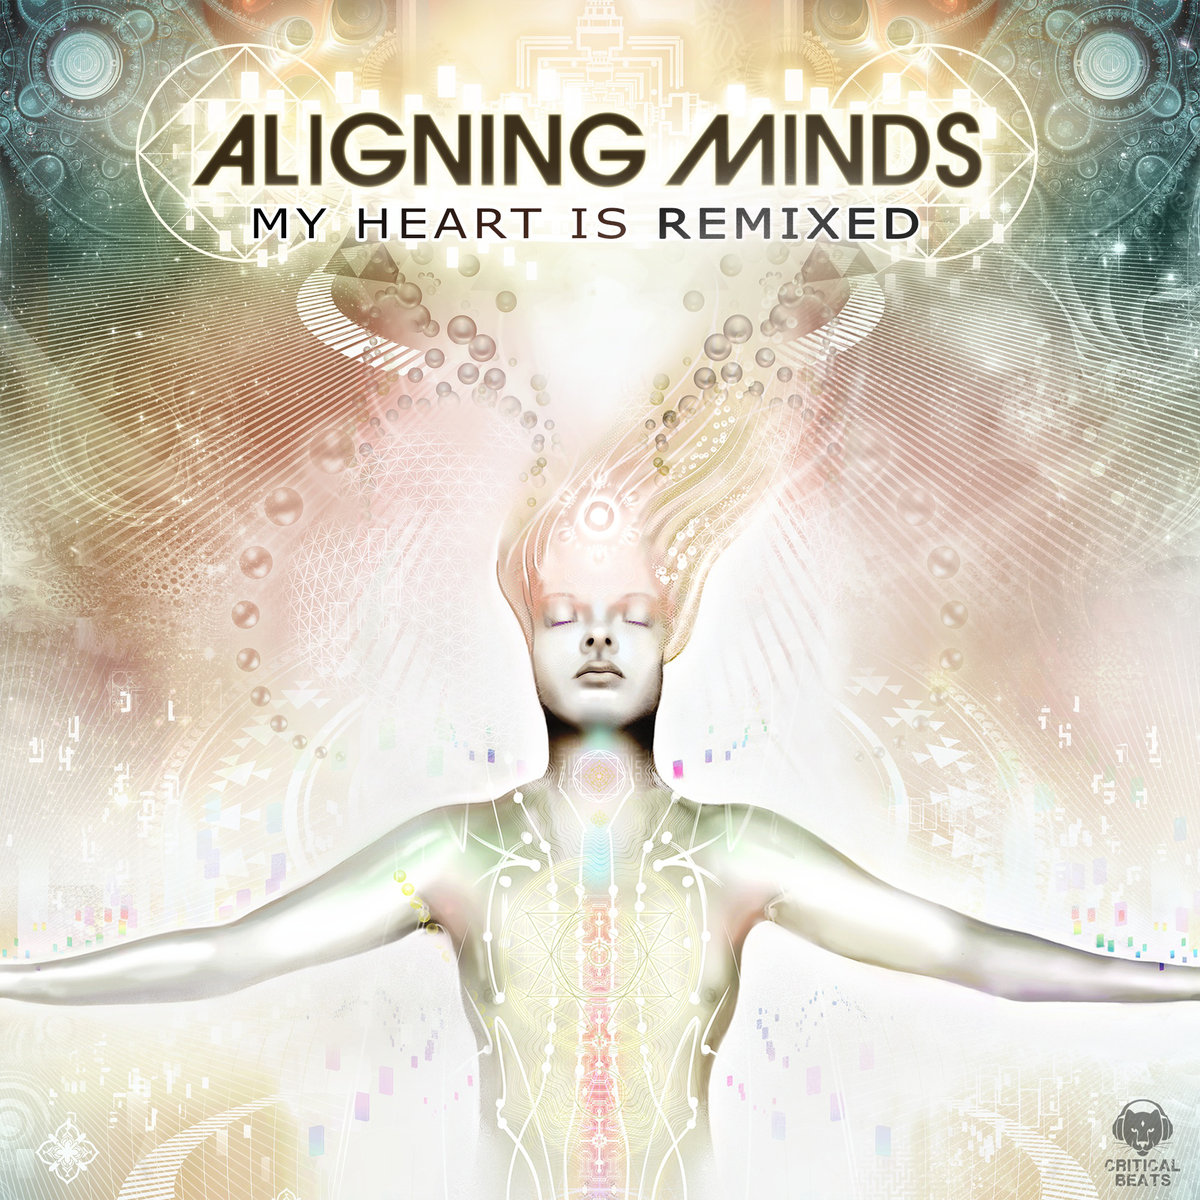 Aligning Minds - A Noble Truth (Shortmanb Remix) @ 'My Heart Is Remixed' album (asheville, baltimore)